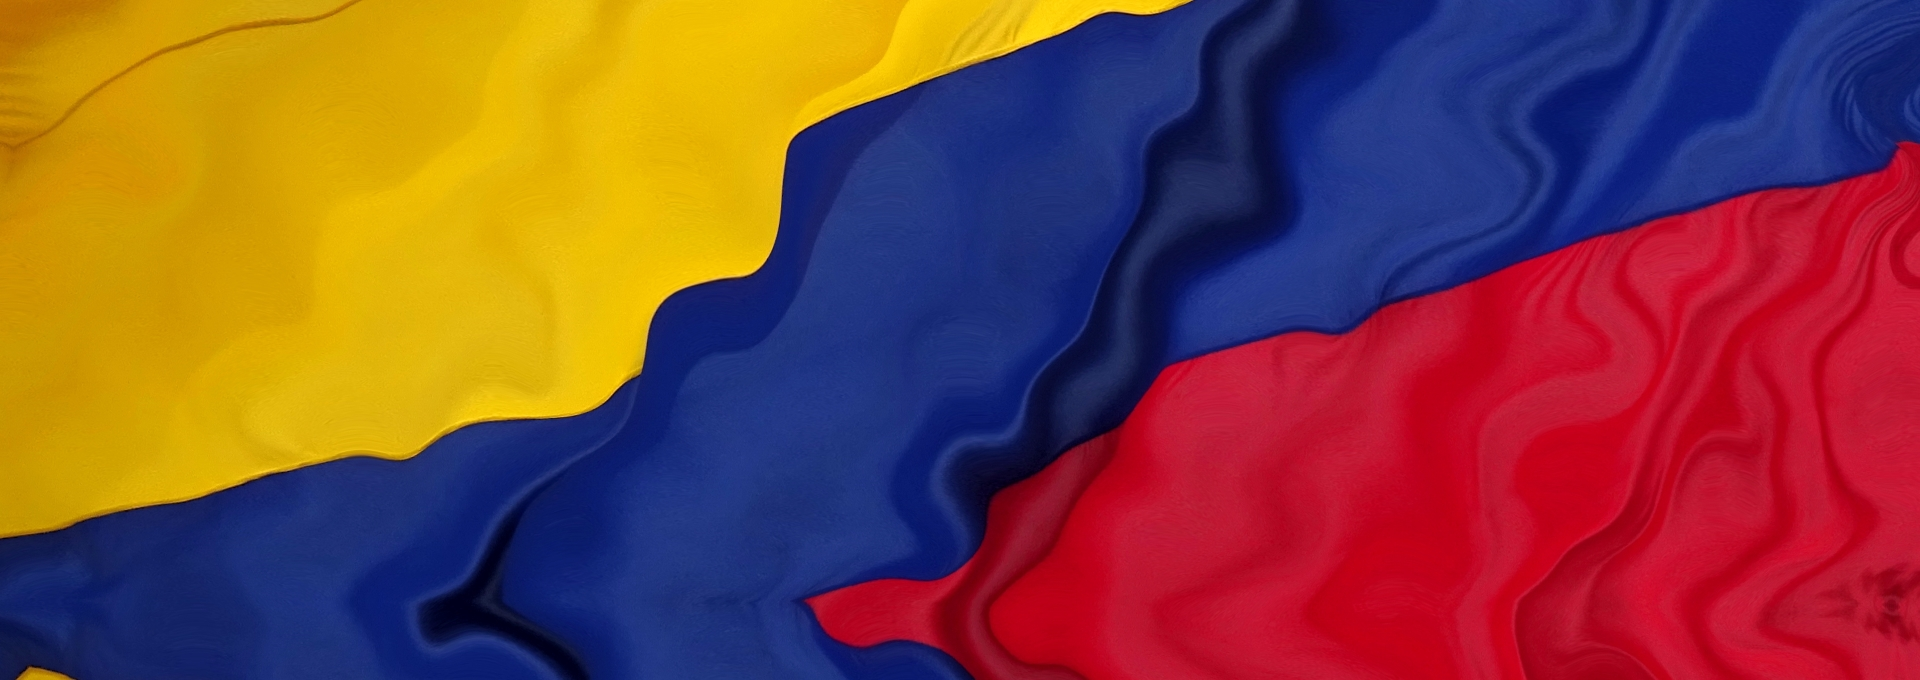 Colombia Drapeau cabossagelumière Dlightningred